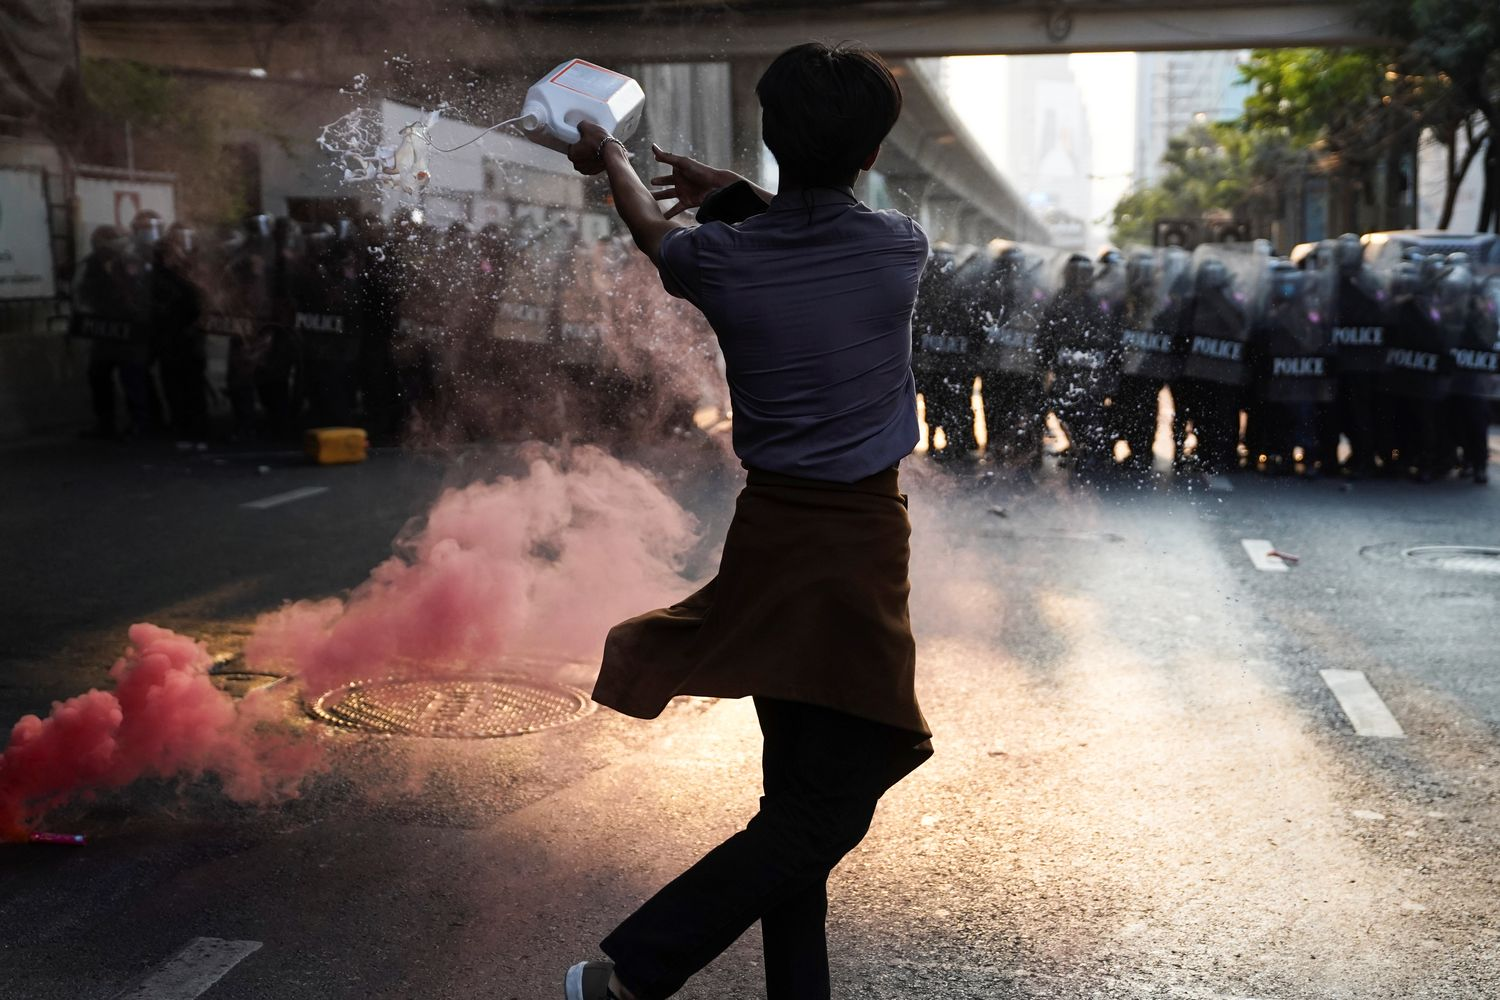 Anti-Thai government protester throws a liquid during a clash with riot police after protesters showed up at a rally for Myanmar's democracy outside the embassy in Bangkok on Monday. (Reuters photo)